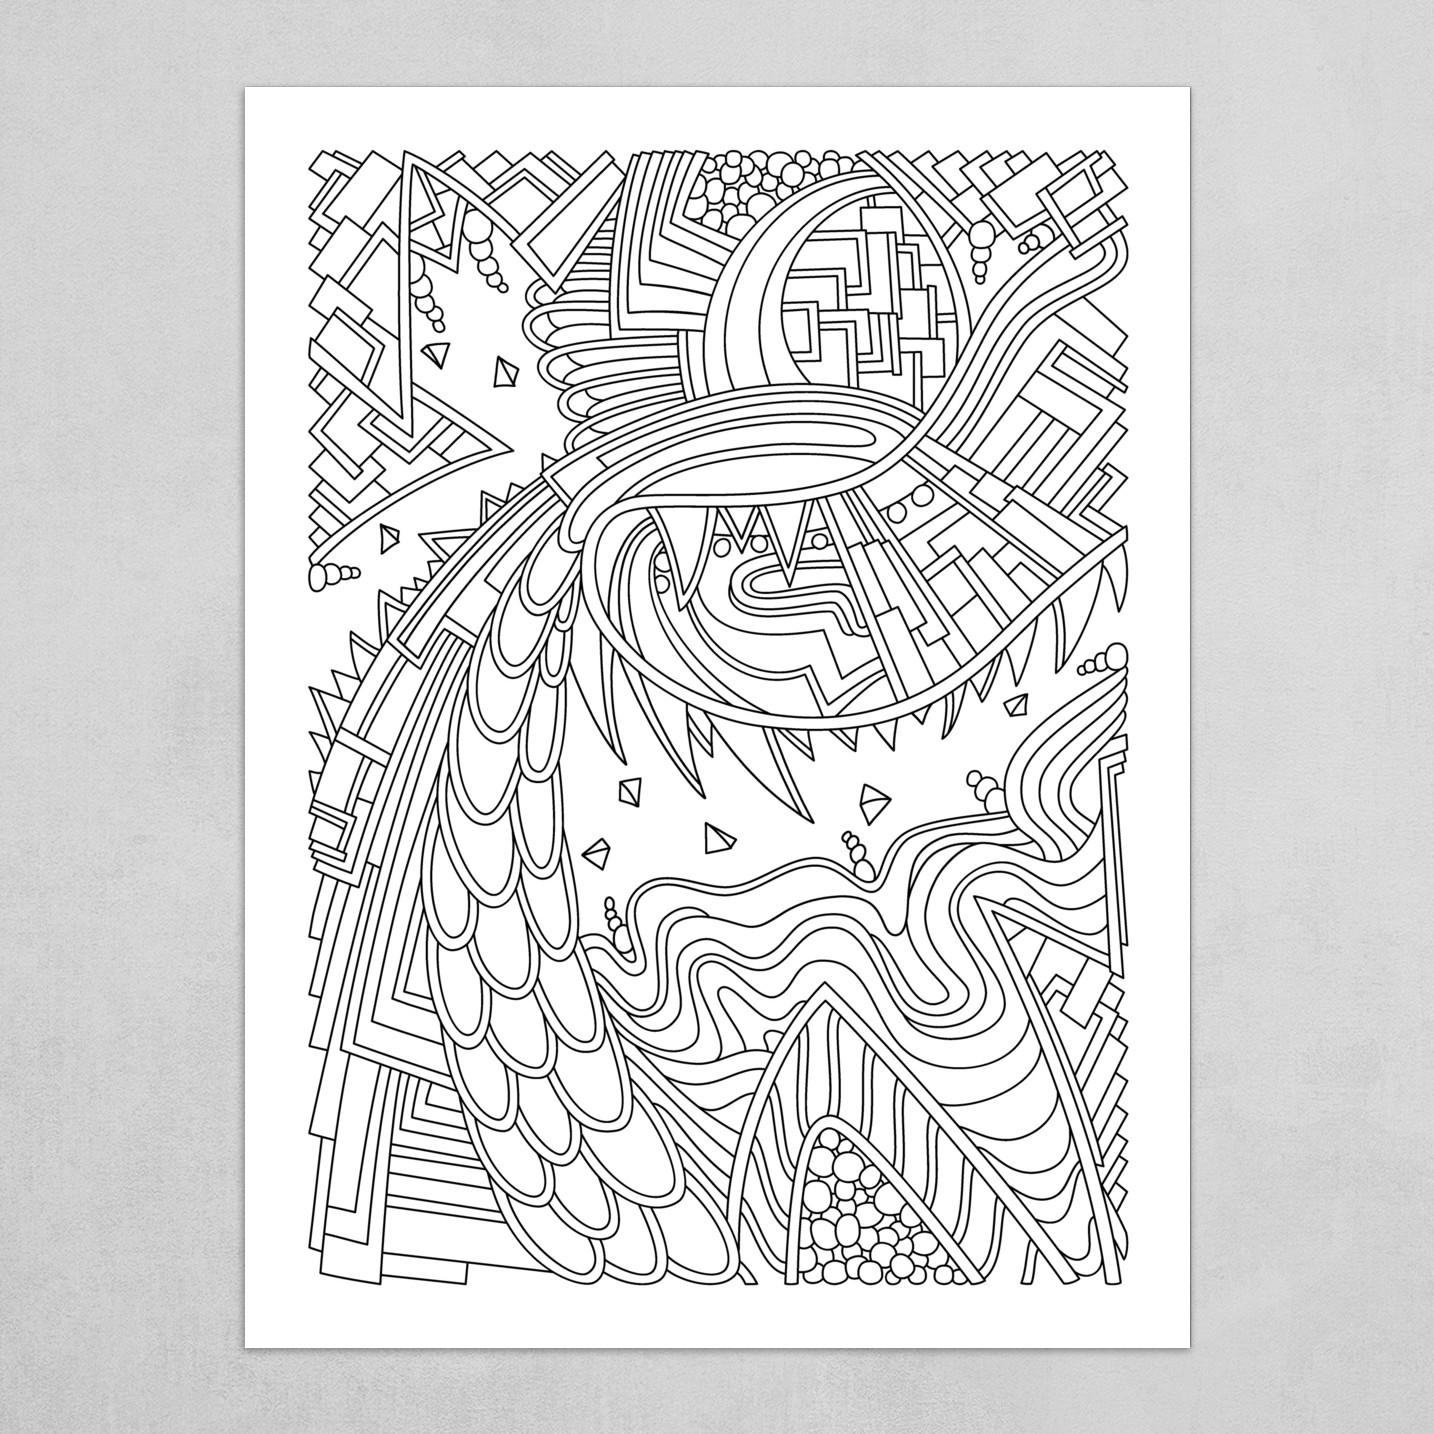 Wandering Abstract Line Art 49: Black & White